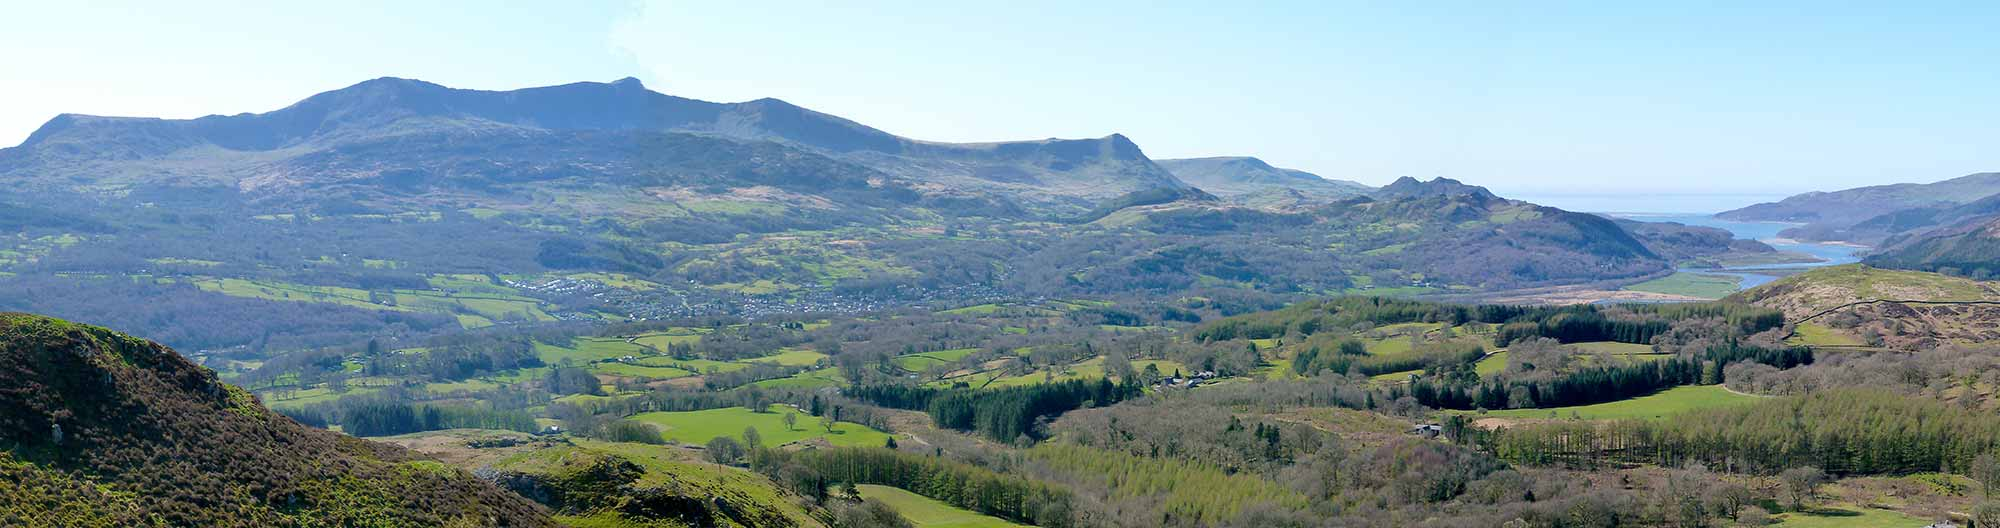 Dolgellau, Cader Idris and The Mawddach Estuary from Foel Offrwm